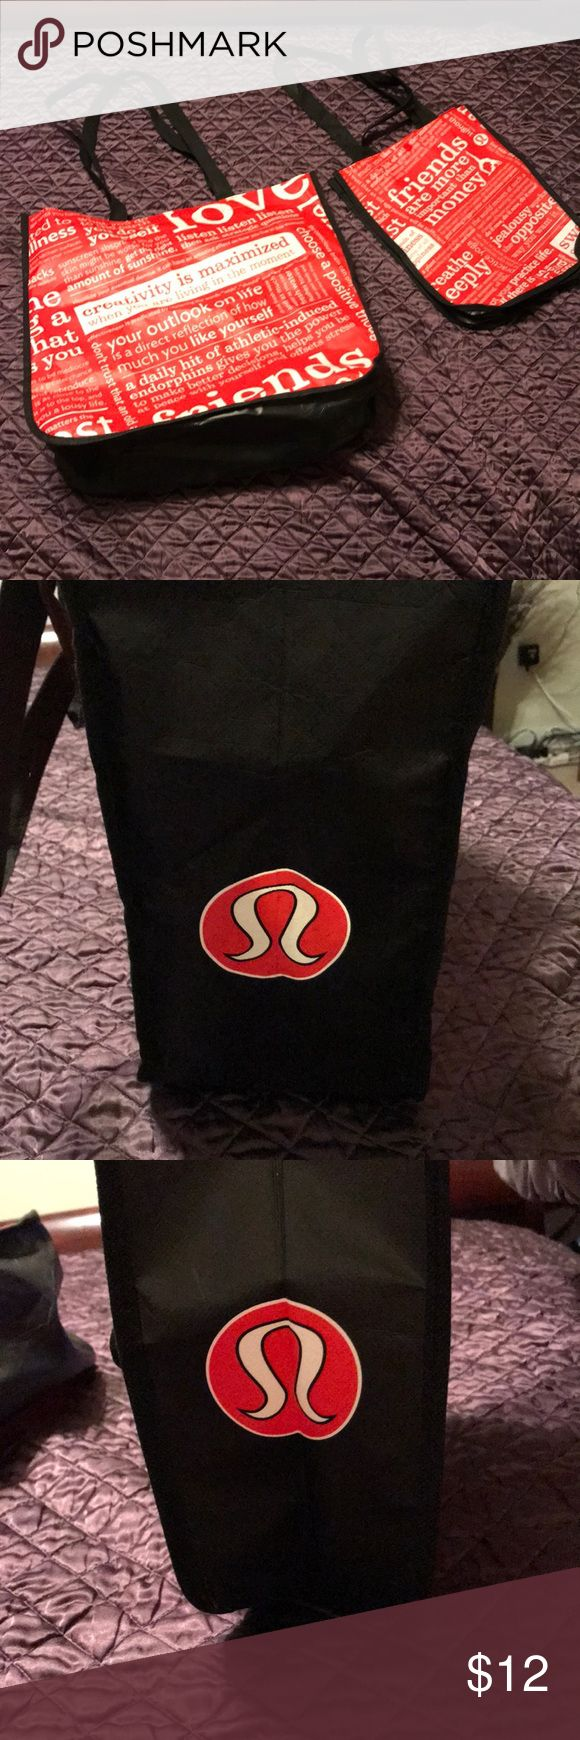 "Set of Lululemon bags 2 pre owned bags in good condition 1 large 15""x 14"" x6""and 1 small 9""x 12""x4"" lululemon athletica Bags"